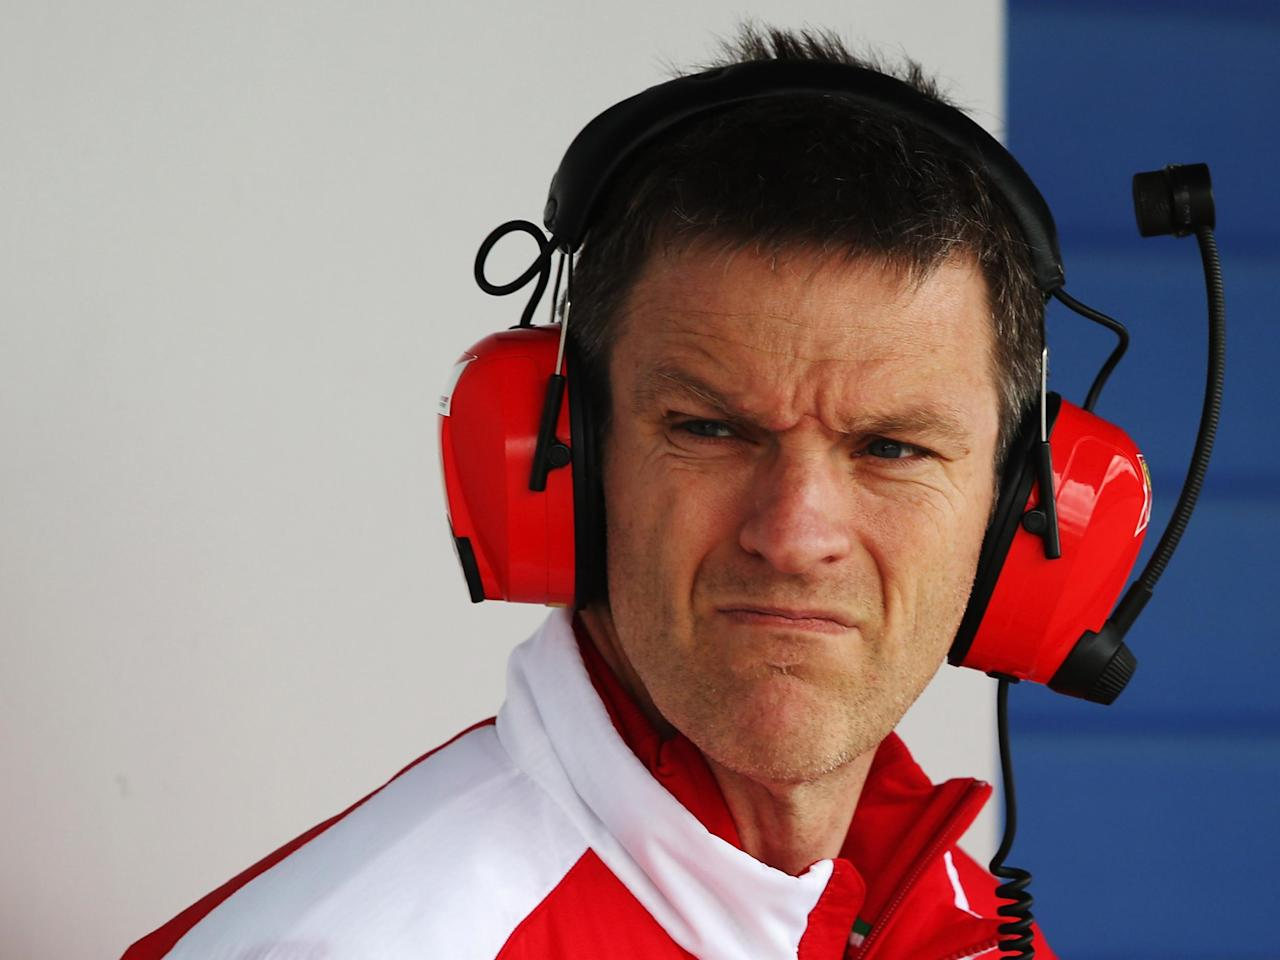 James Allison joins Mercedes F1 in new technical director role